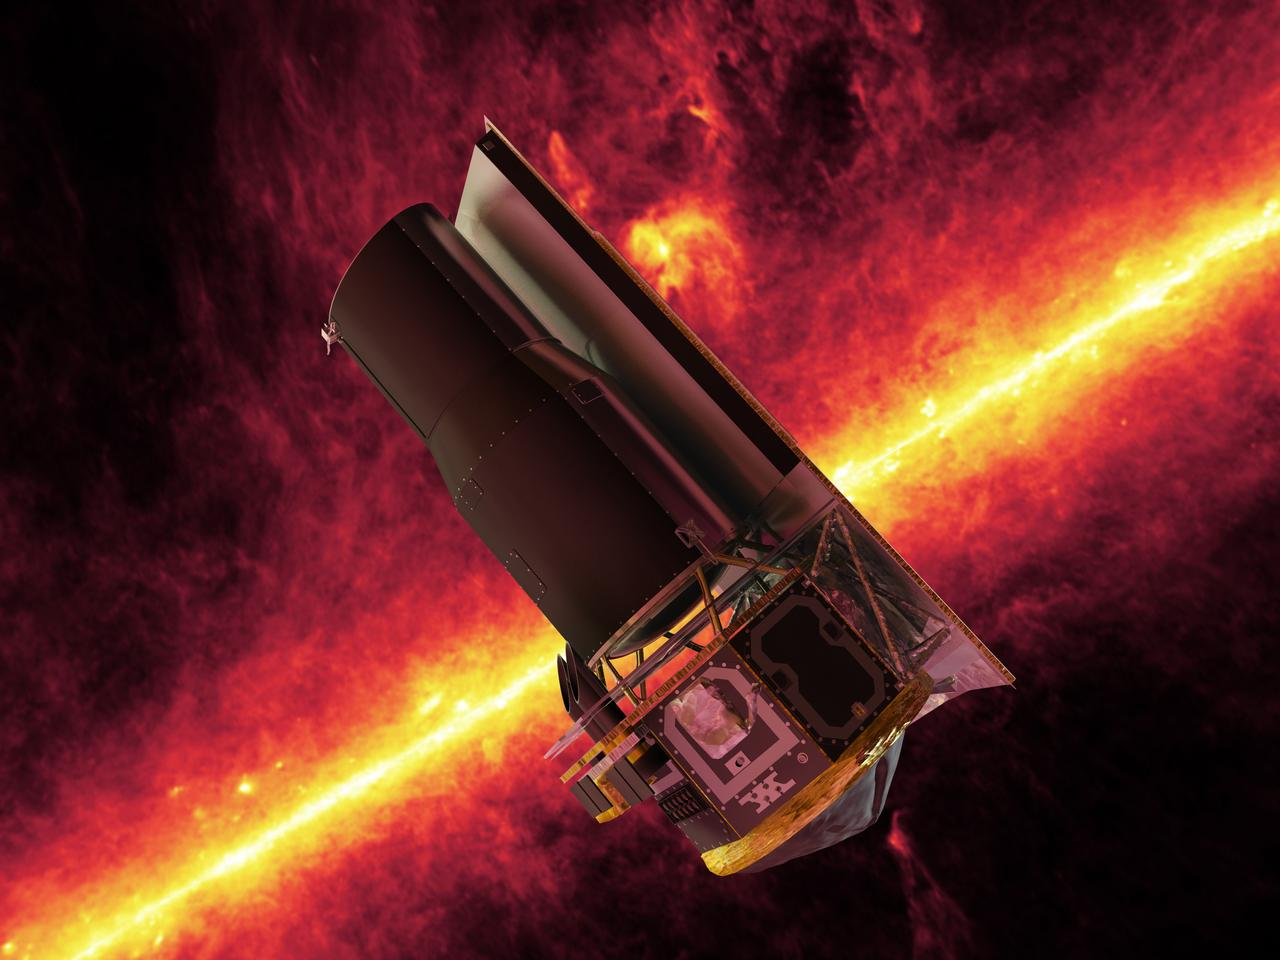 The Spitzer space telescope provided data that helped determine the brown dwarf's properties (Image: NASA)